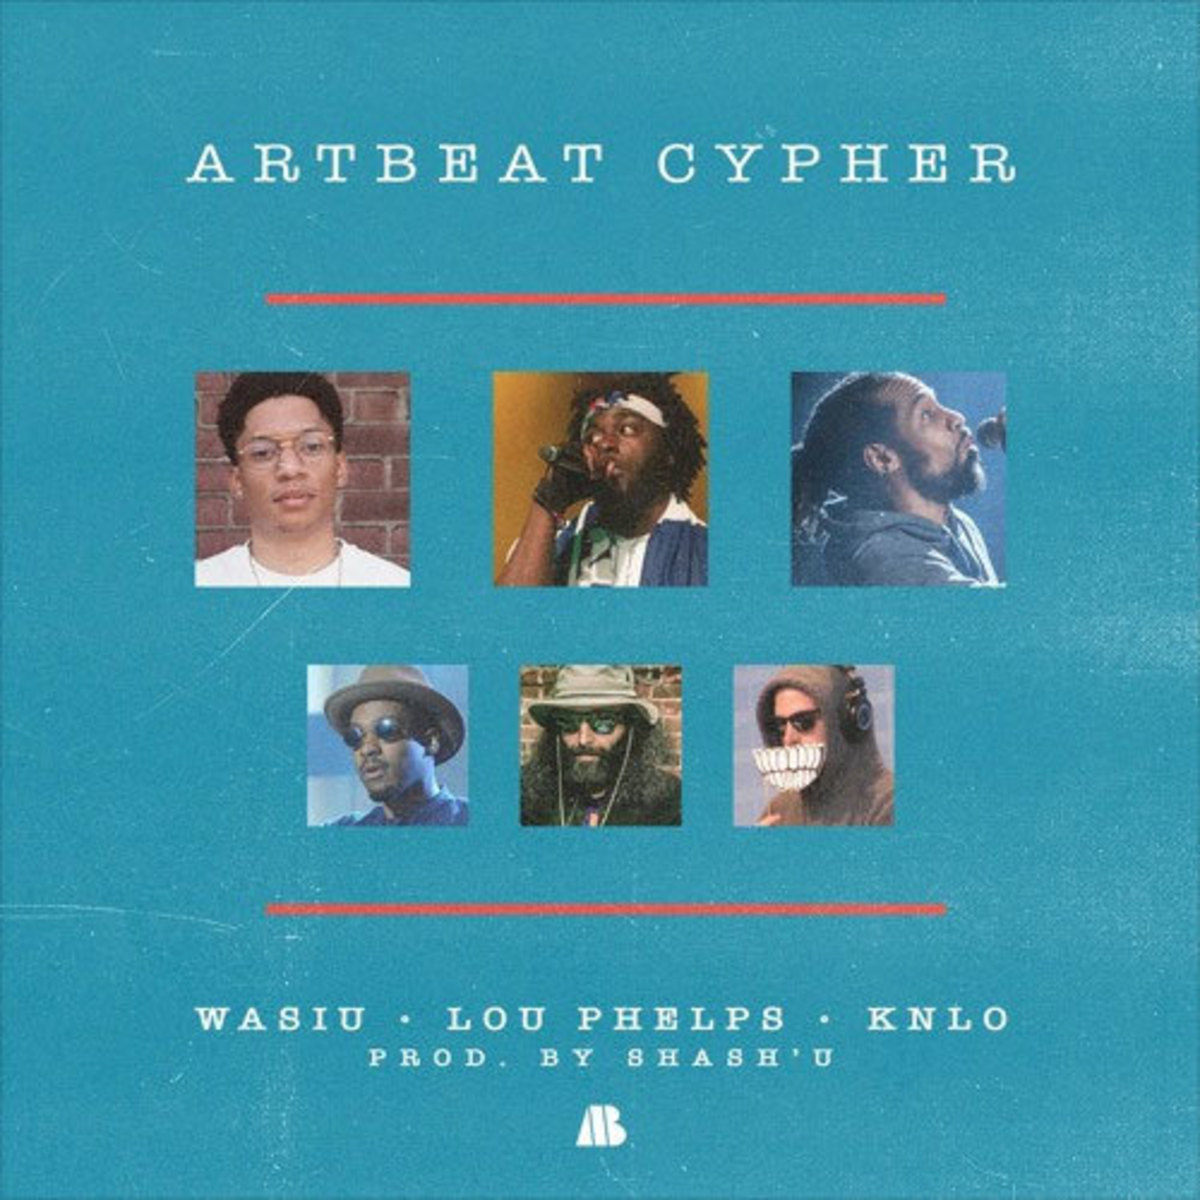 wasiu-artbeat-cypher.jpg